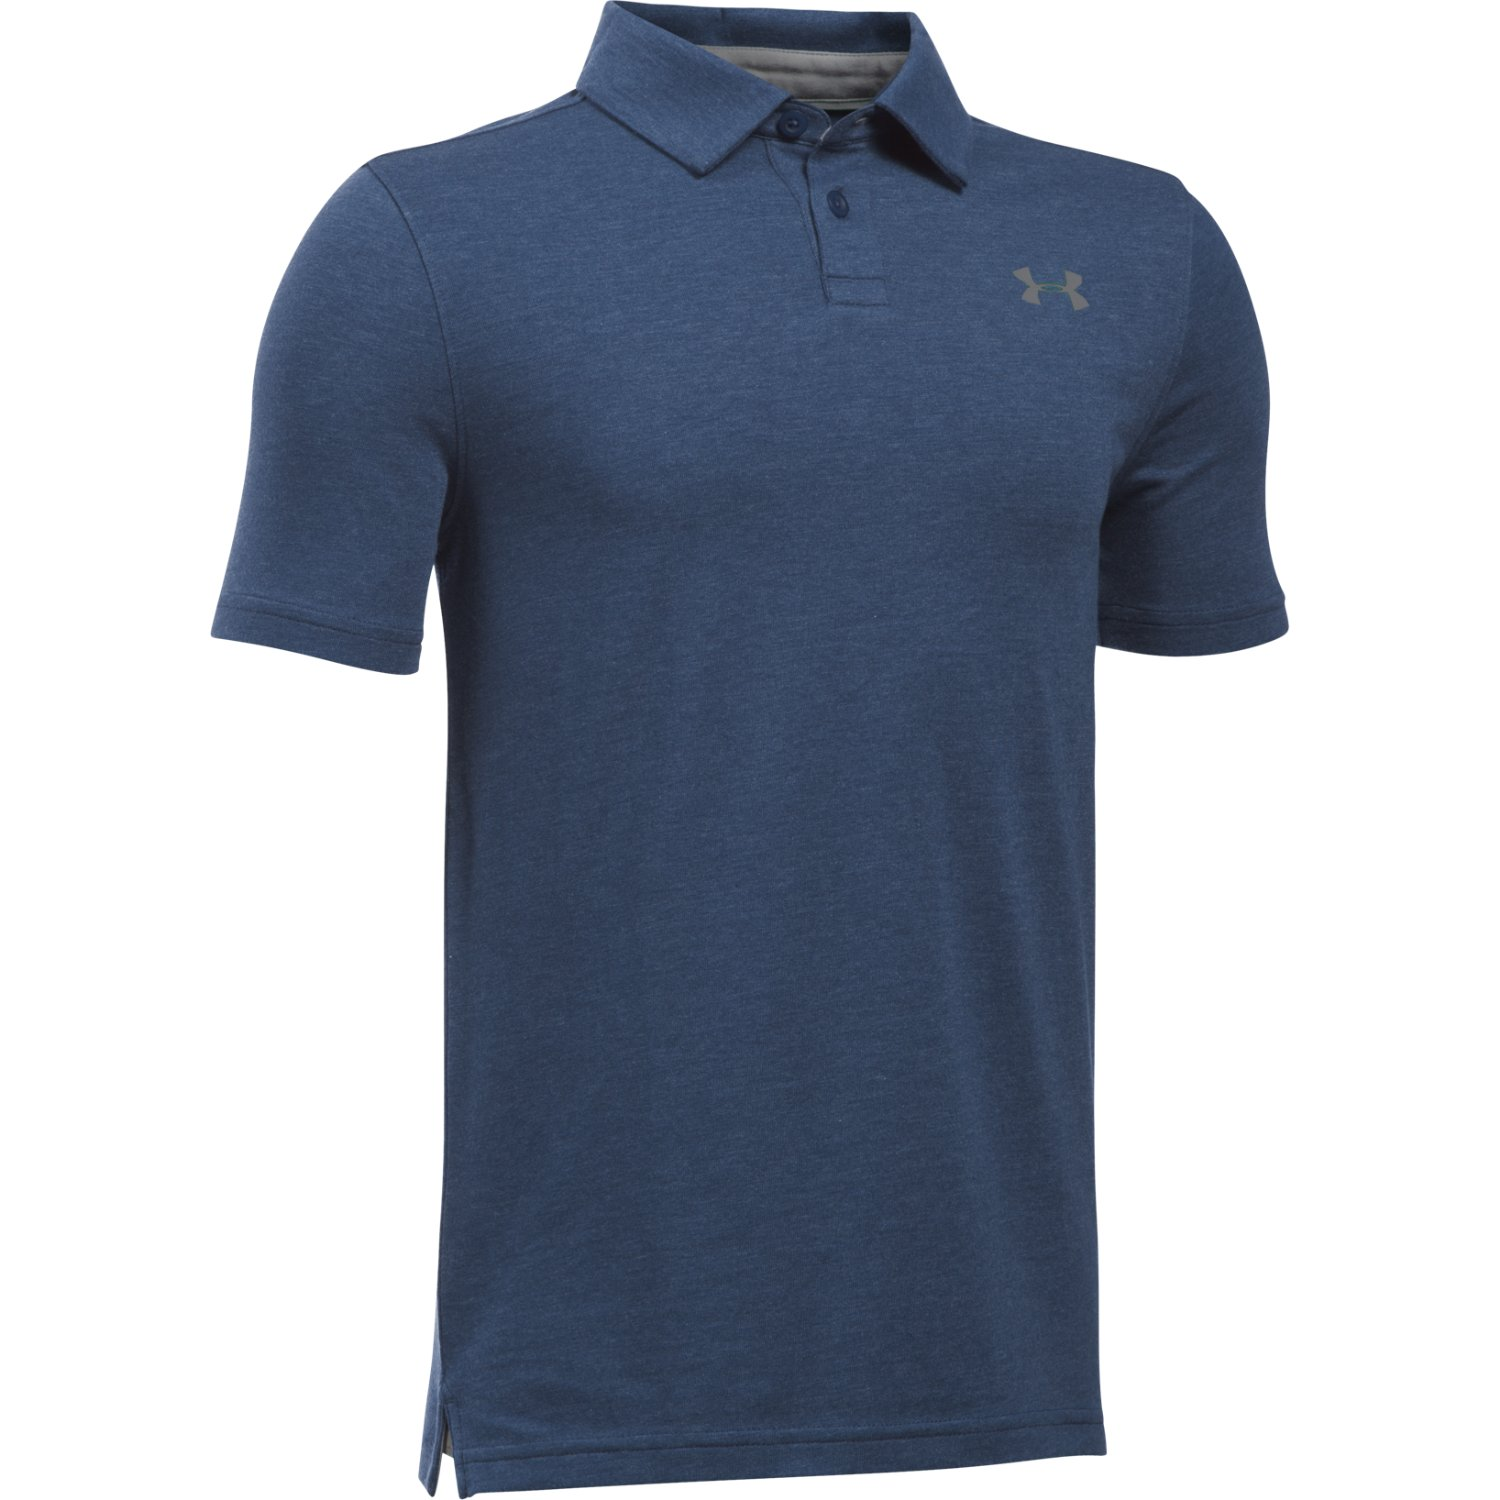 , BLACKOUT NAVY, zoomed image